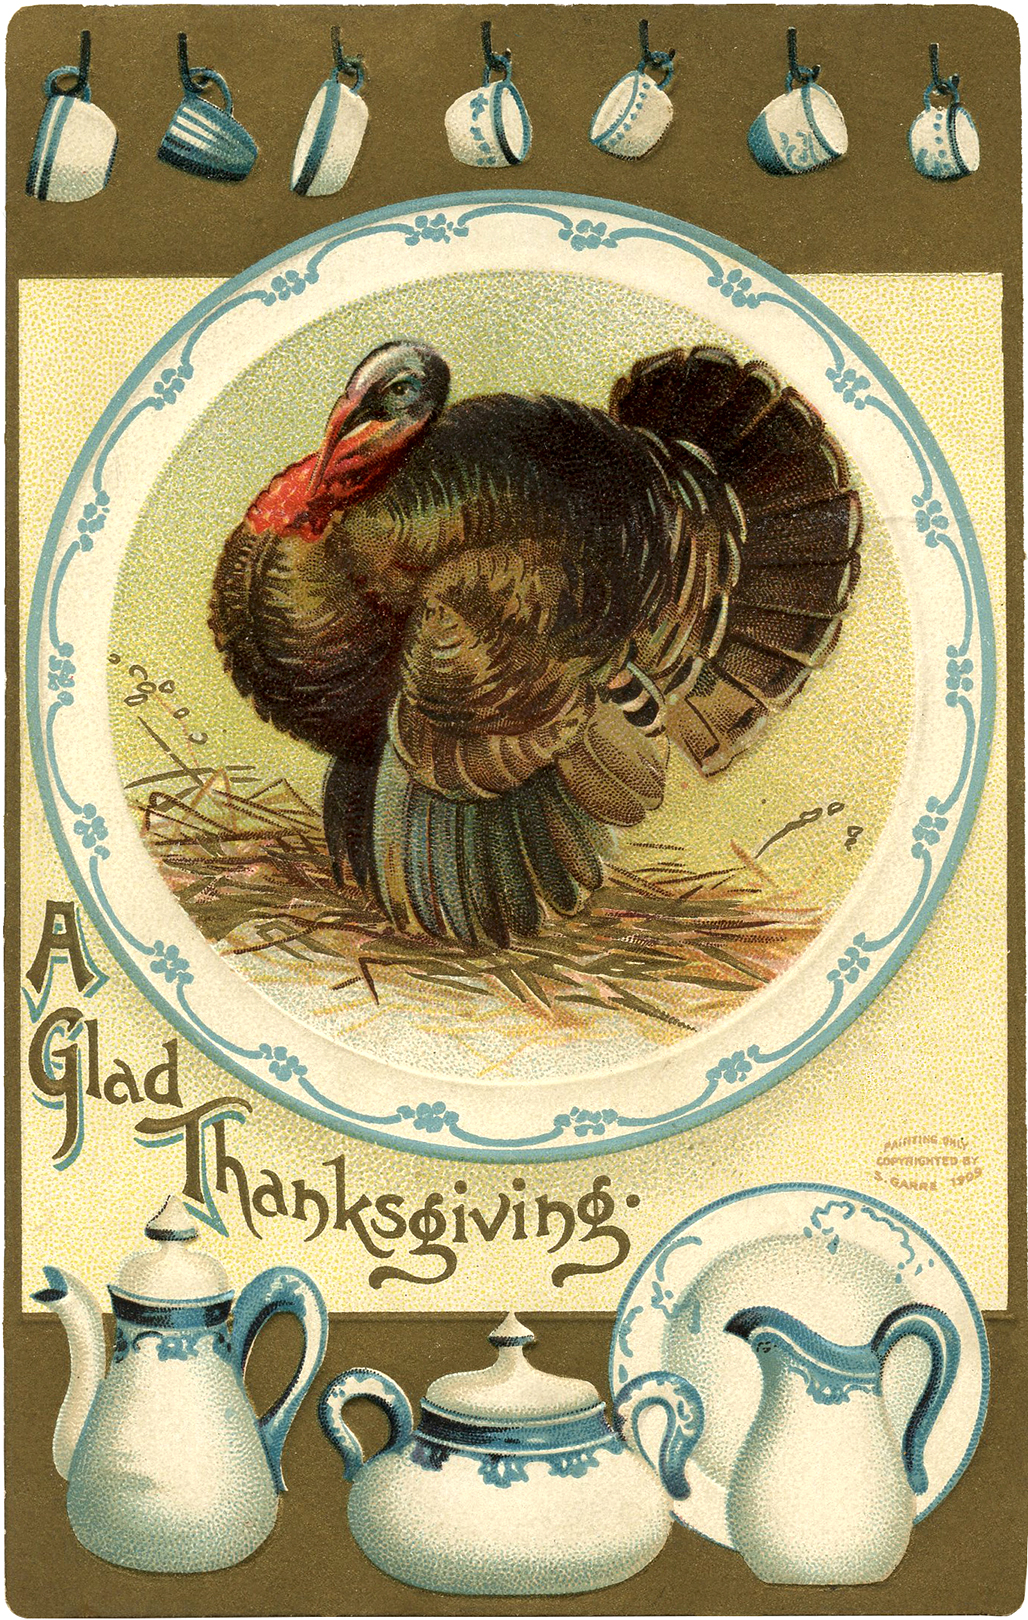 Vintage Thanksgiving Turkey Image - The Graphics Fairy